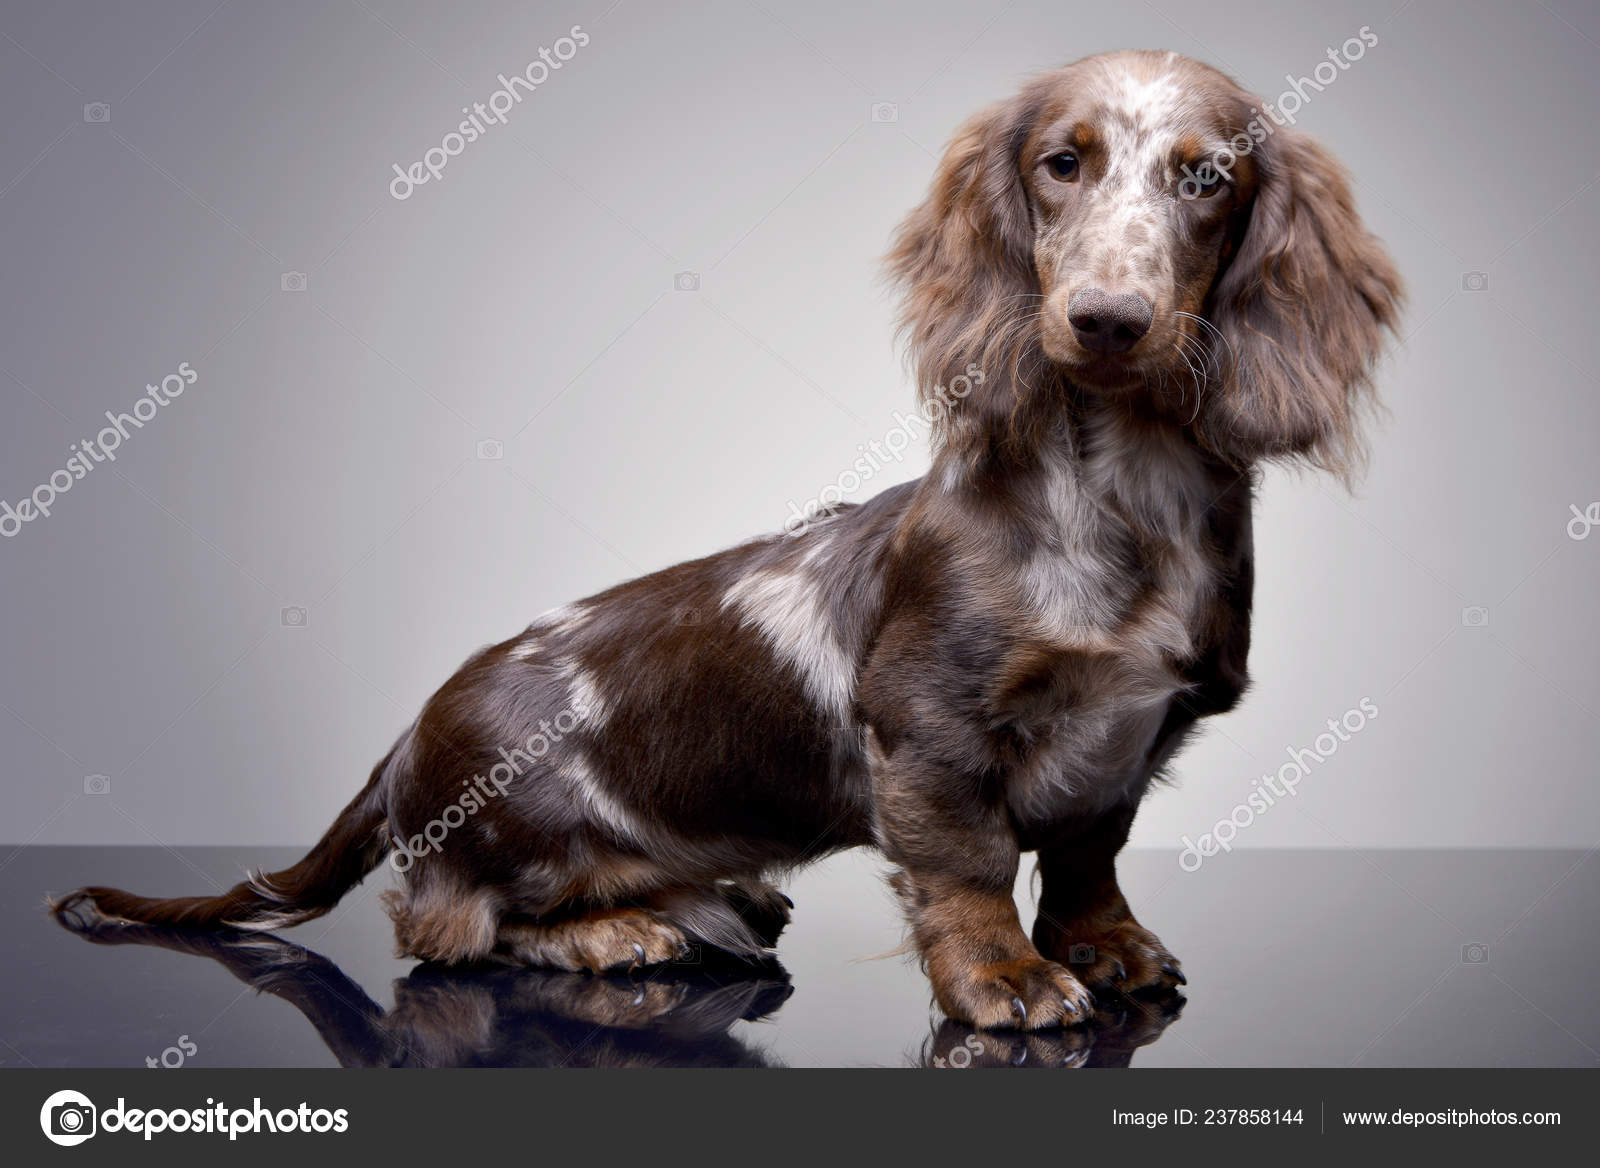 Studio Shot Cute Dachshund Puppy Sitting Grey Background Stock Photo C Kisscsanad 237858144